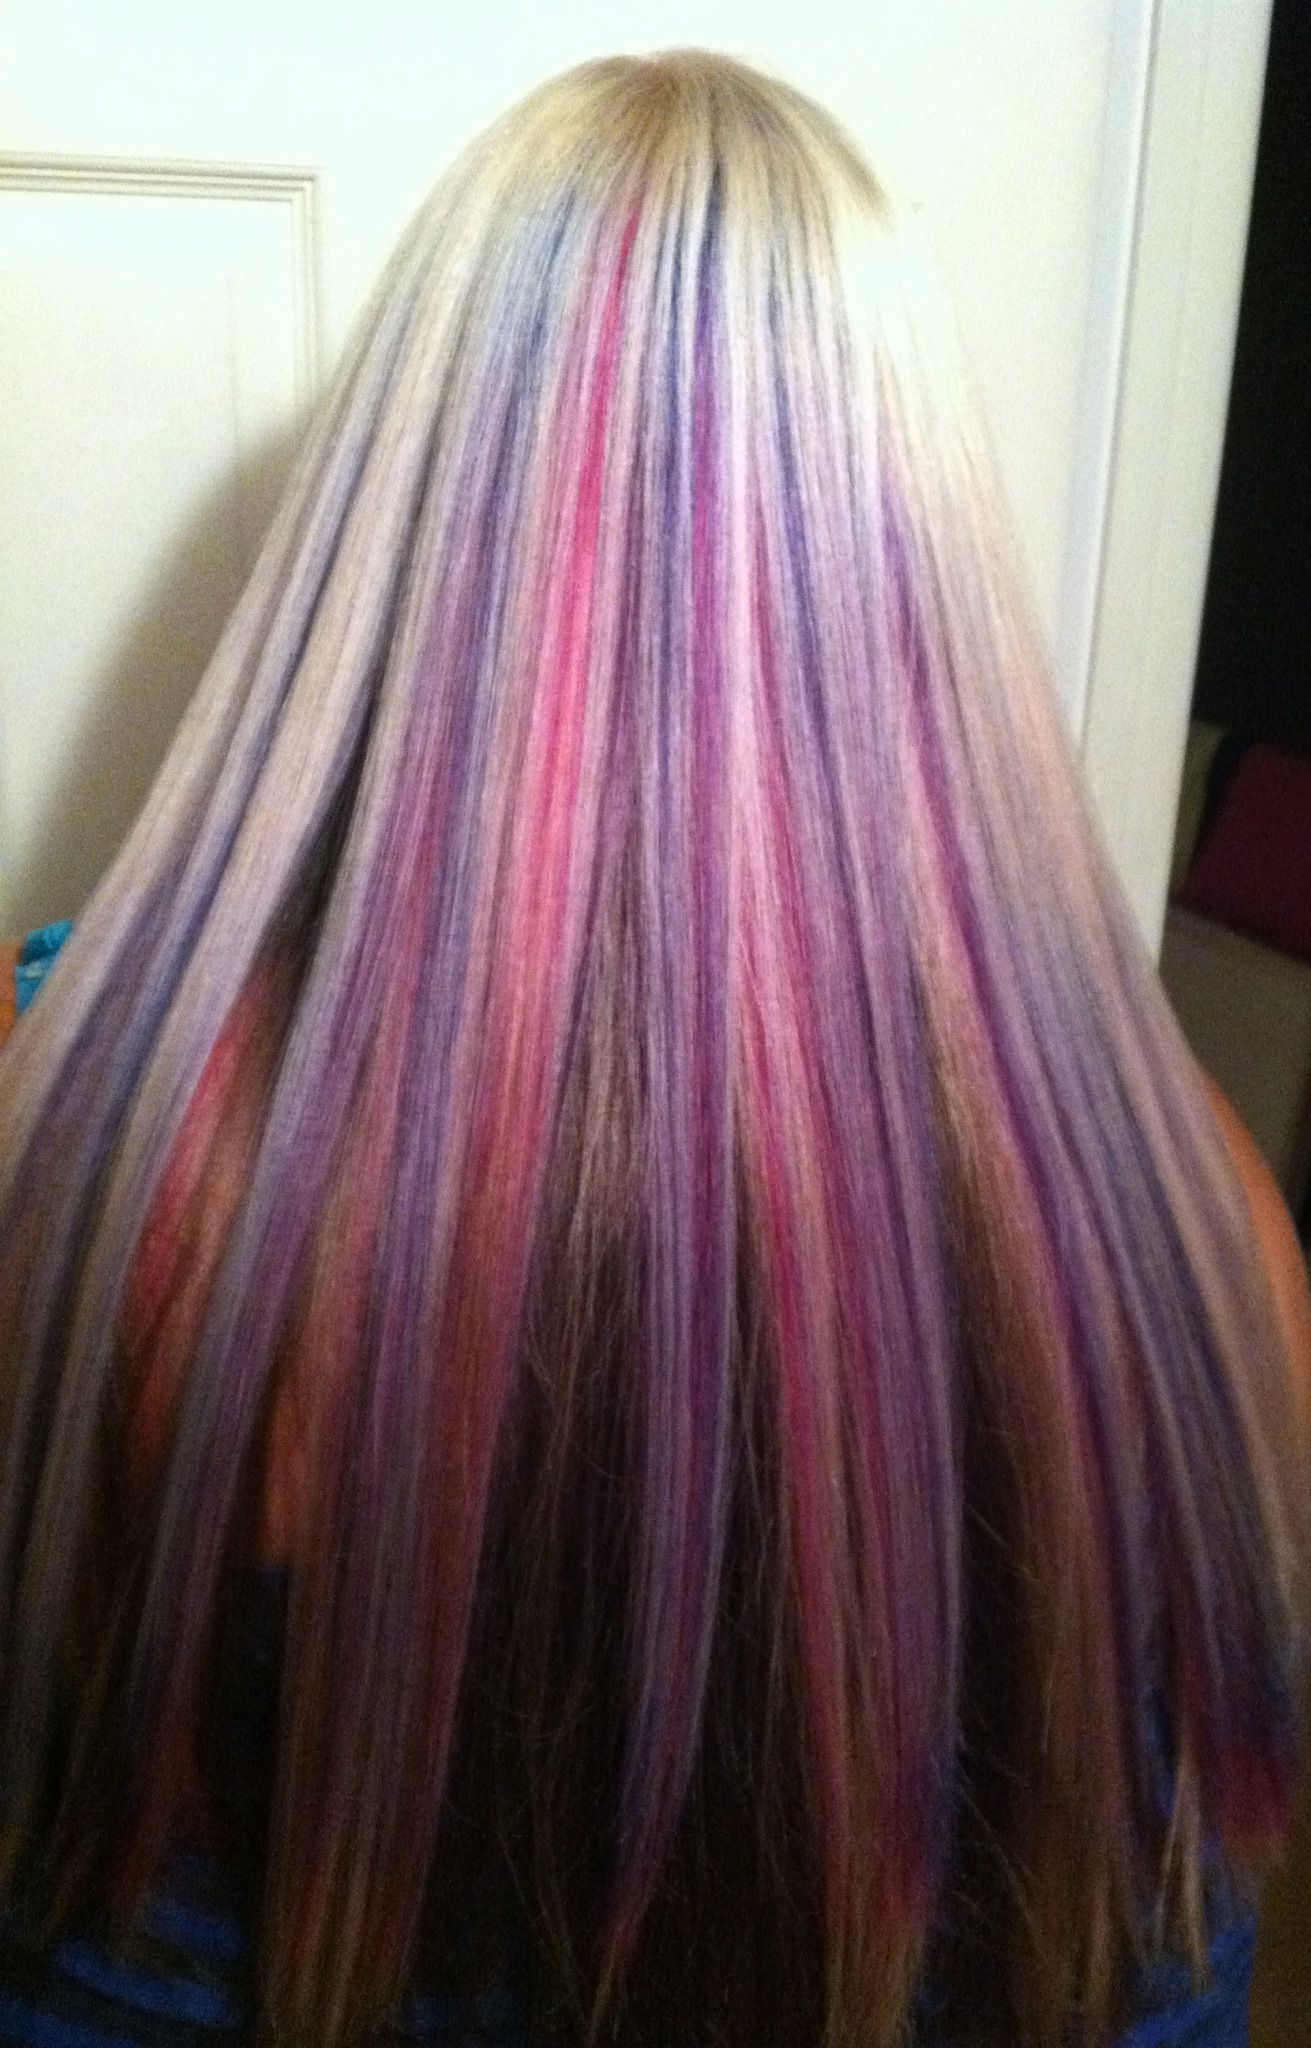 Pink Blue Purple Highlights Blond On Top Dark Brown Underneath Colored Hair Tips Natural Red Hair Purple Hair Highlights